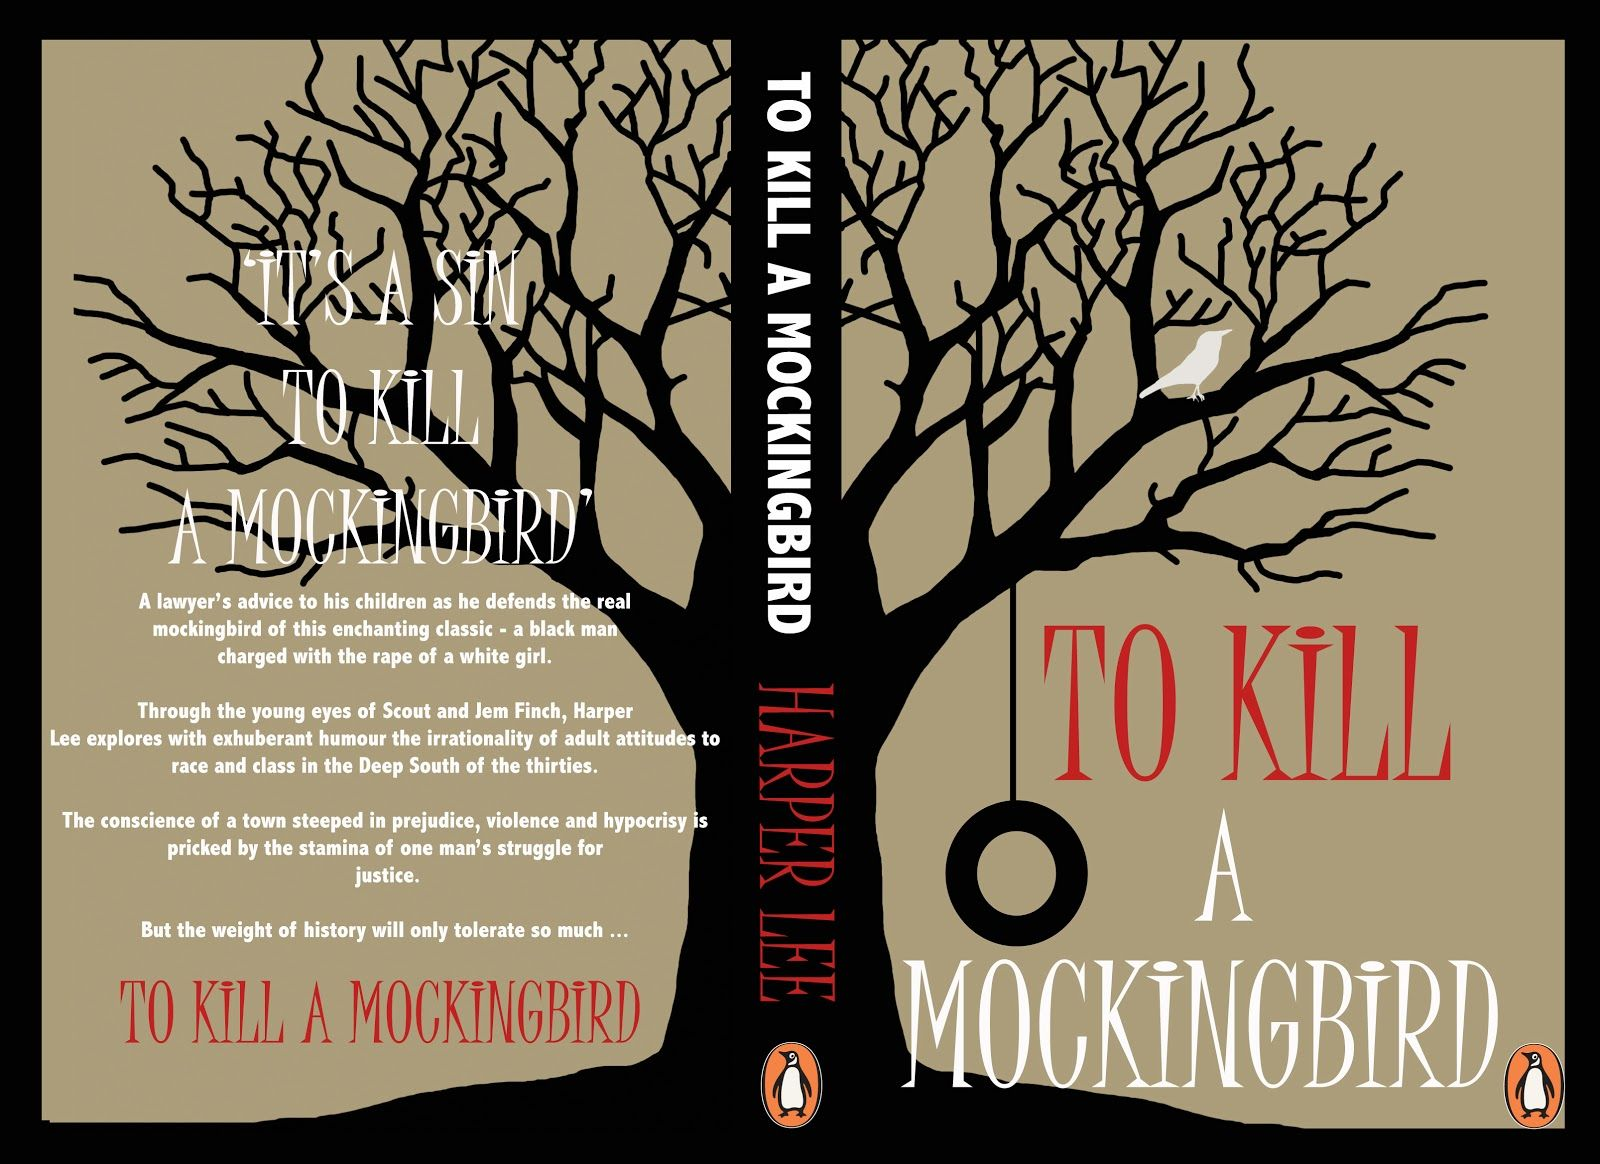 a chapter analysis of the novel to kill a mockingbird [pdf]free to kill a mockingbird study guide questions and answers chapters 26 31 download book to kill a mockingbird study guide questions and answers chapters 26 31pdf.